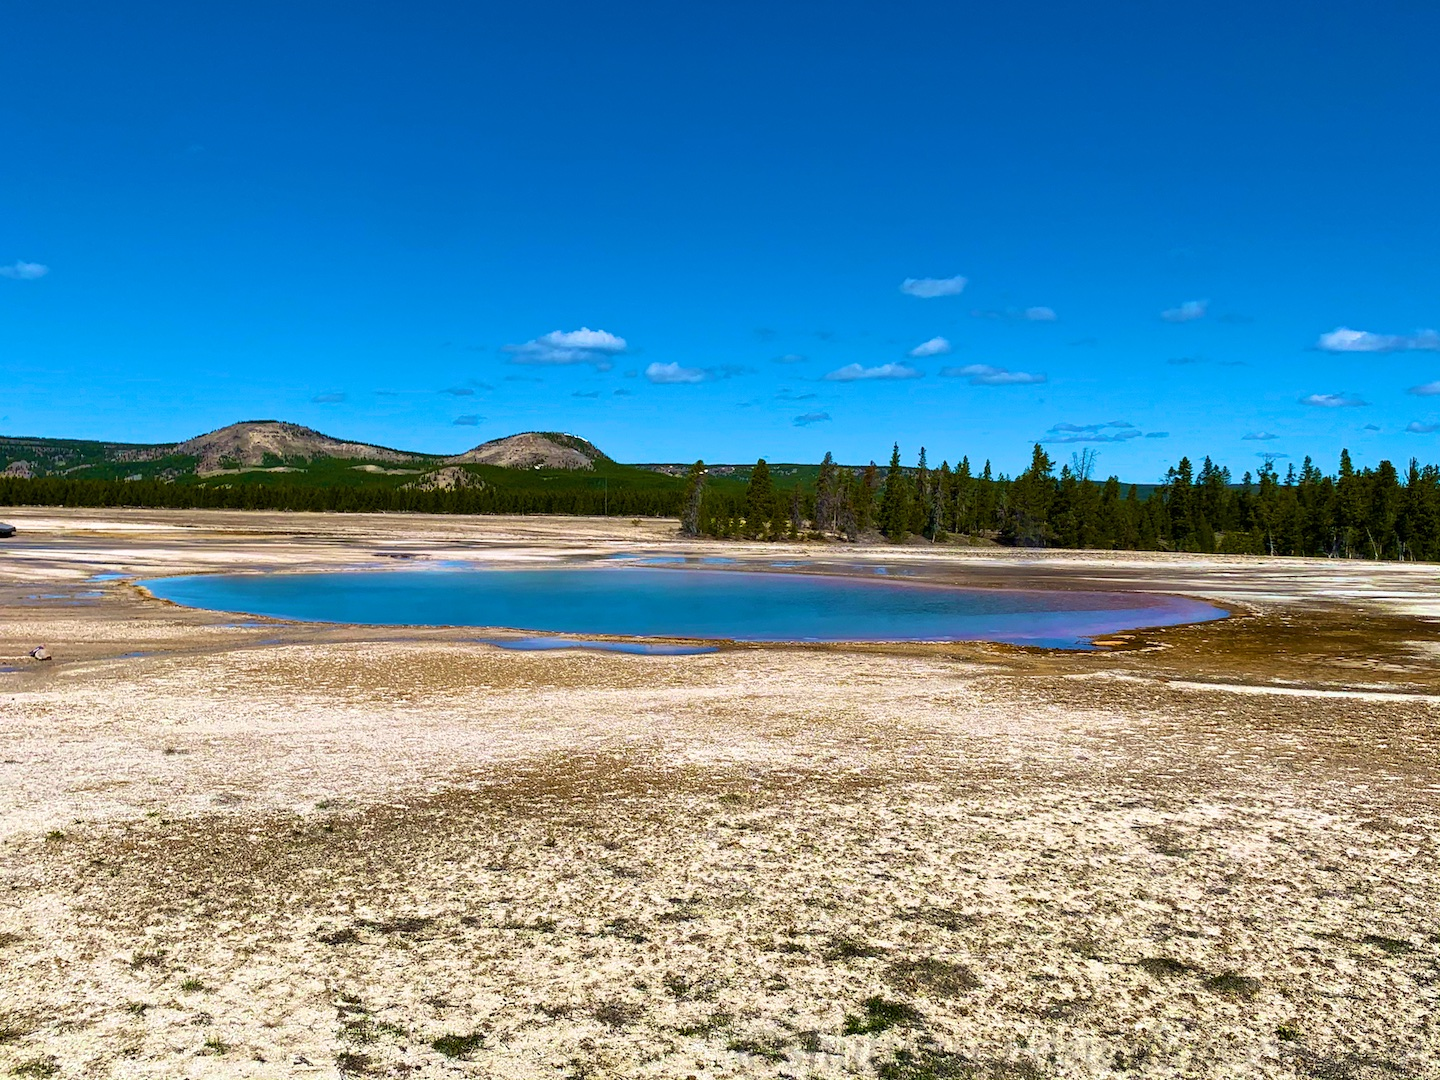 Opal Pool at Midway Geyser Basin, Yellowstone National Park, USA